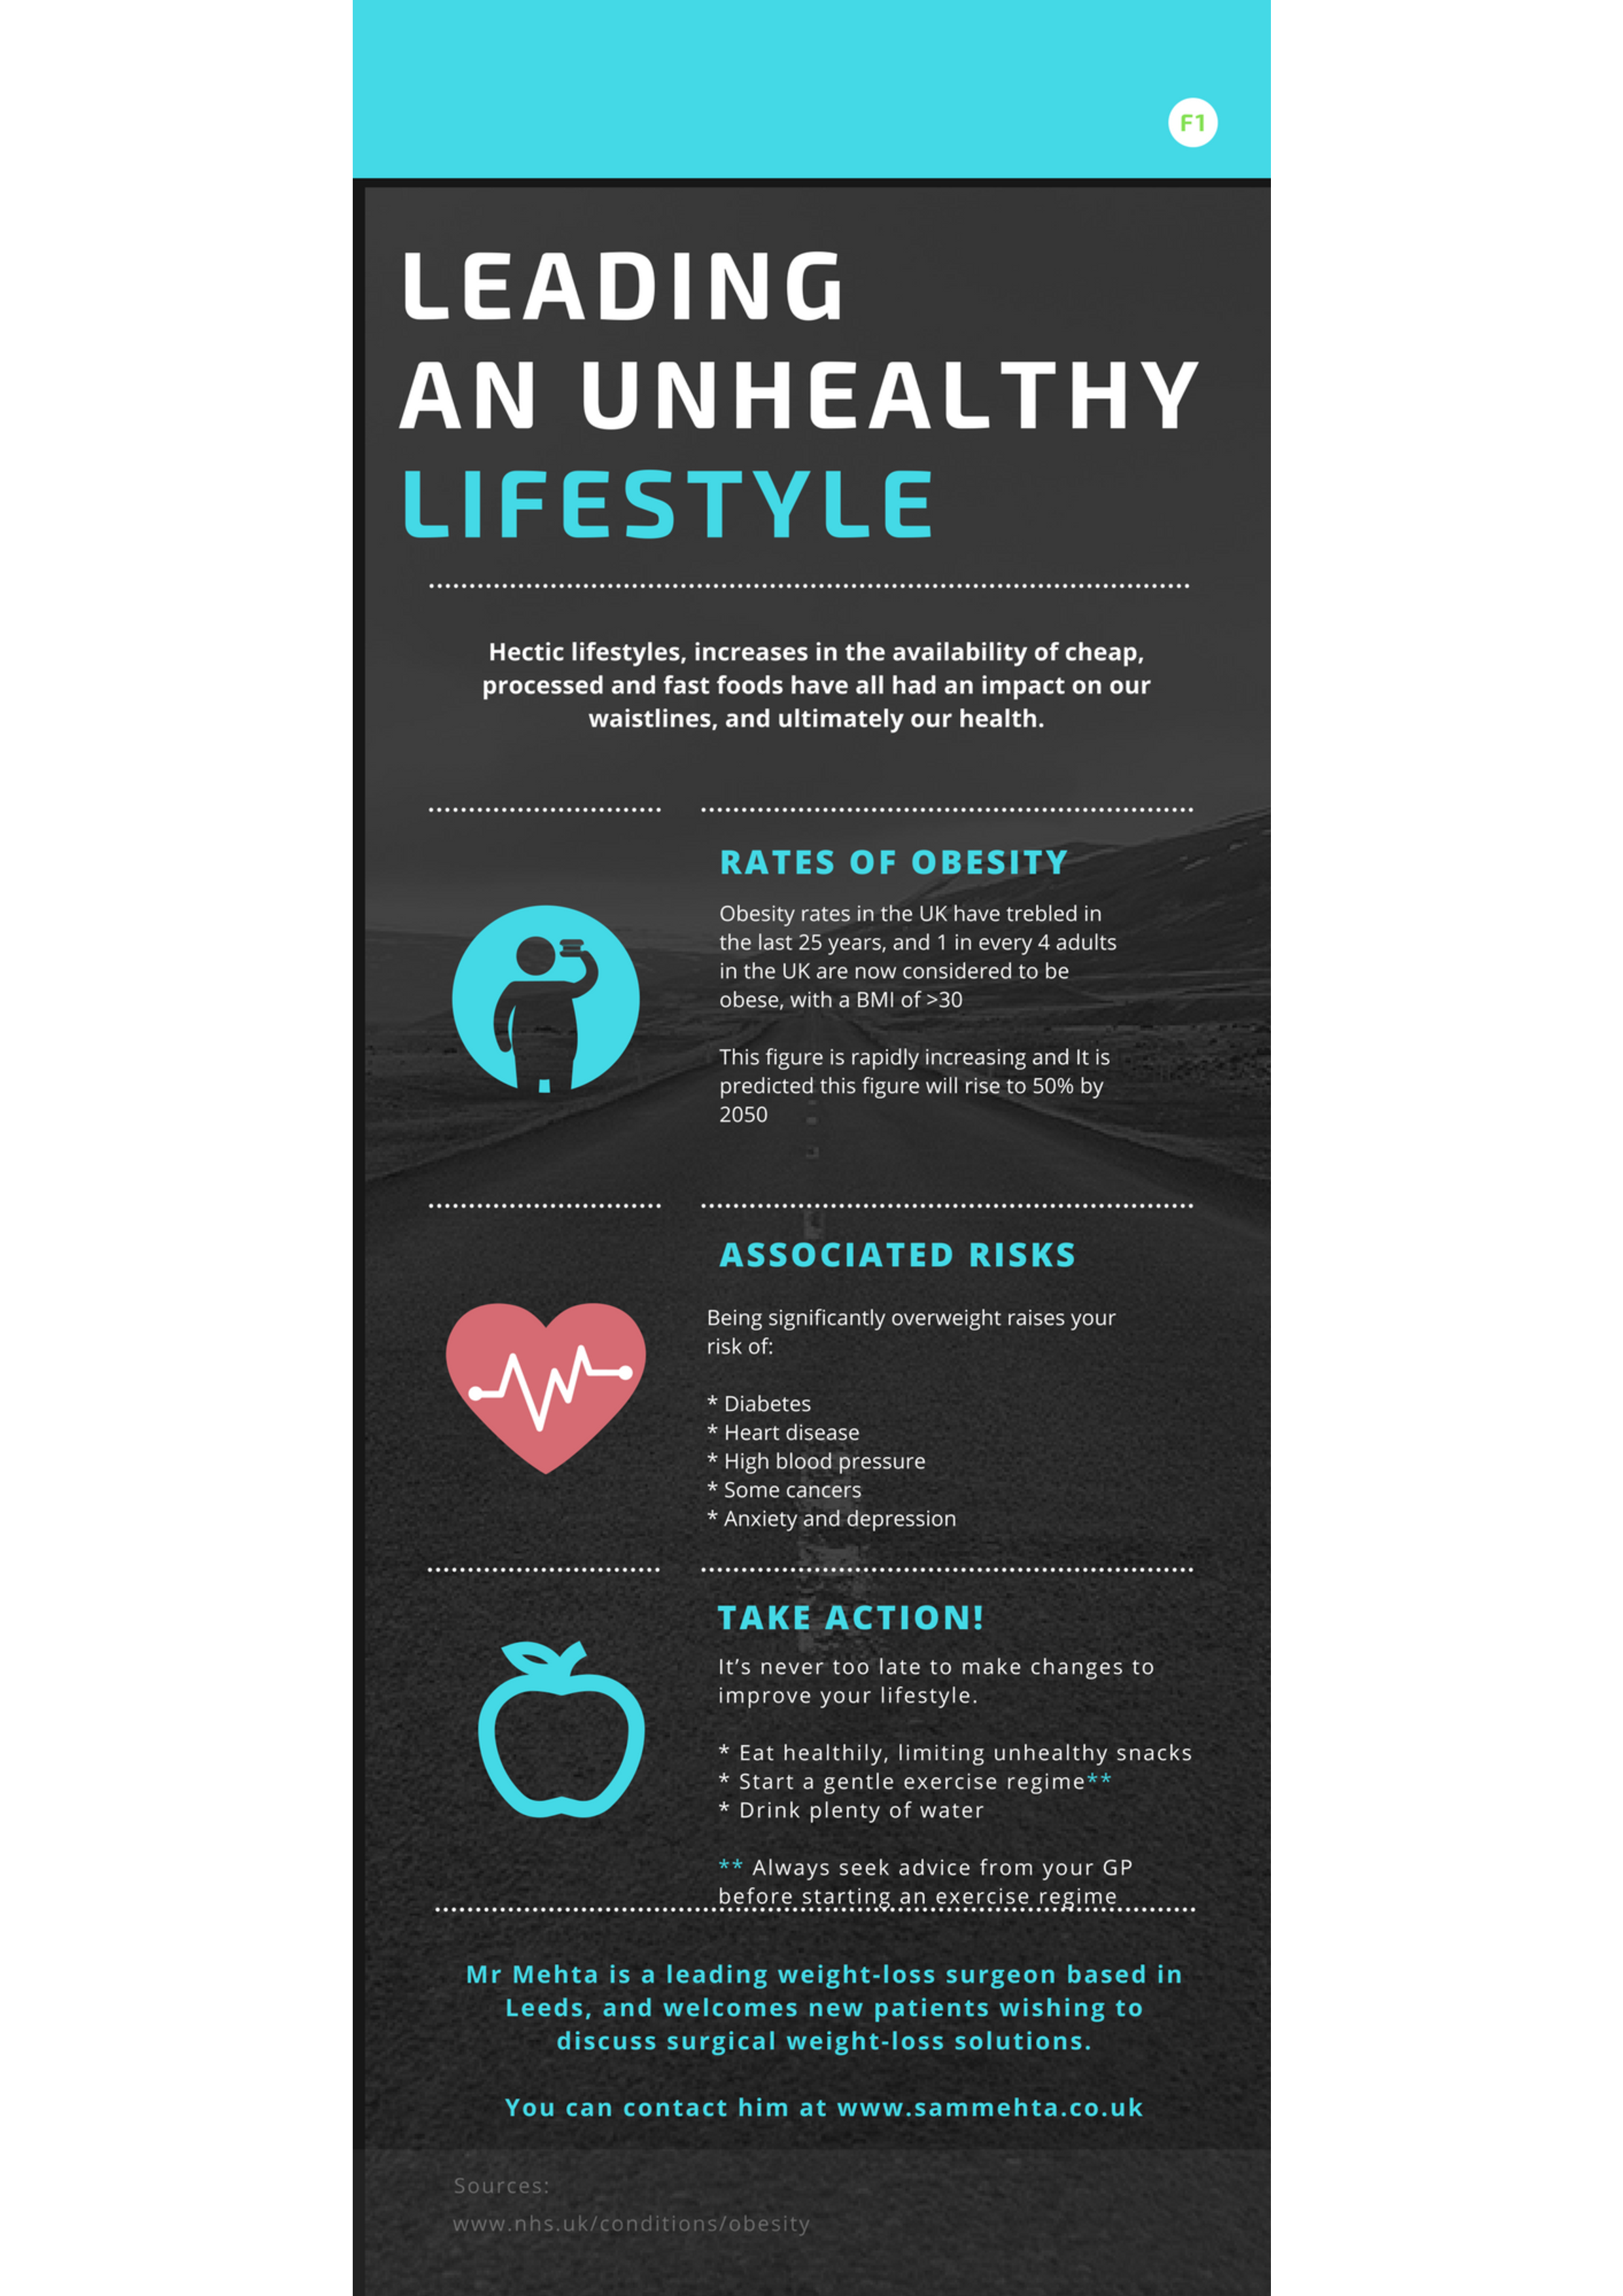 Risks of an unhealthy lifestyle3